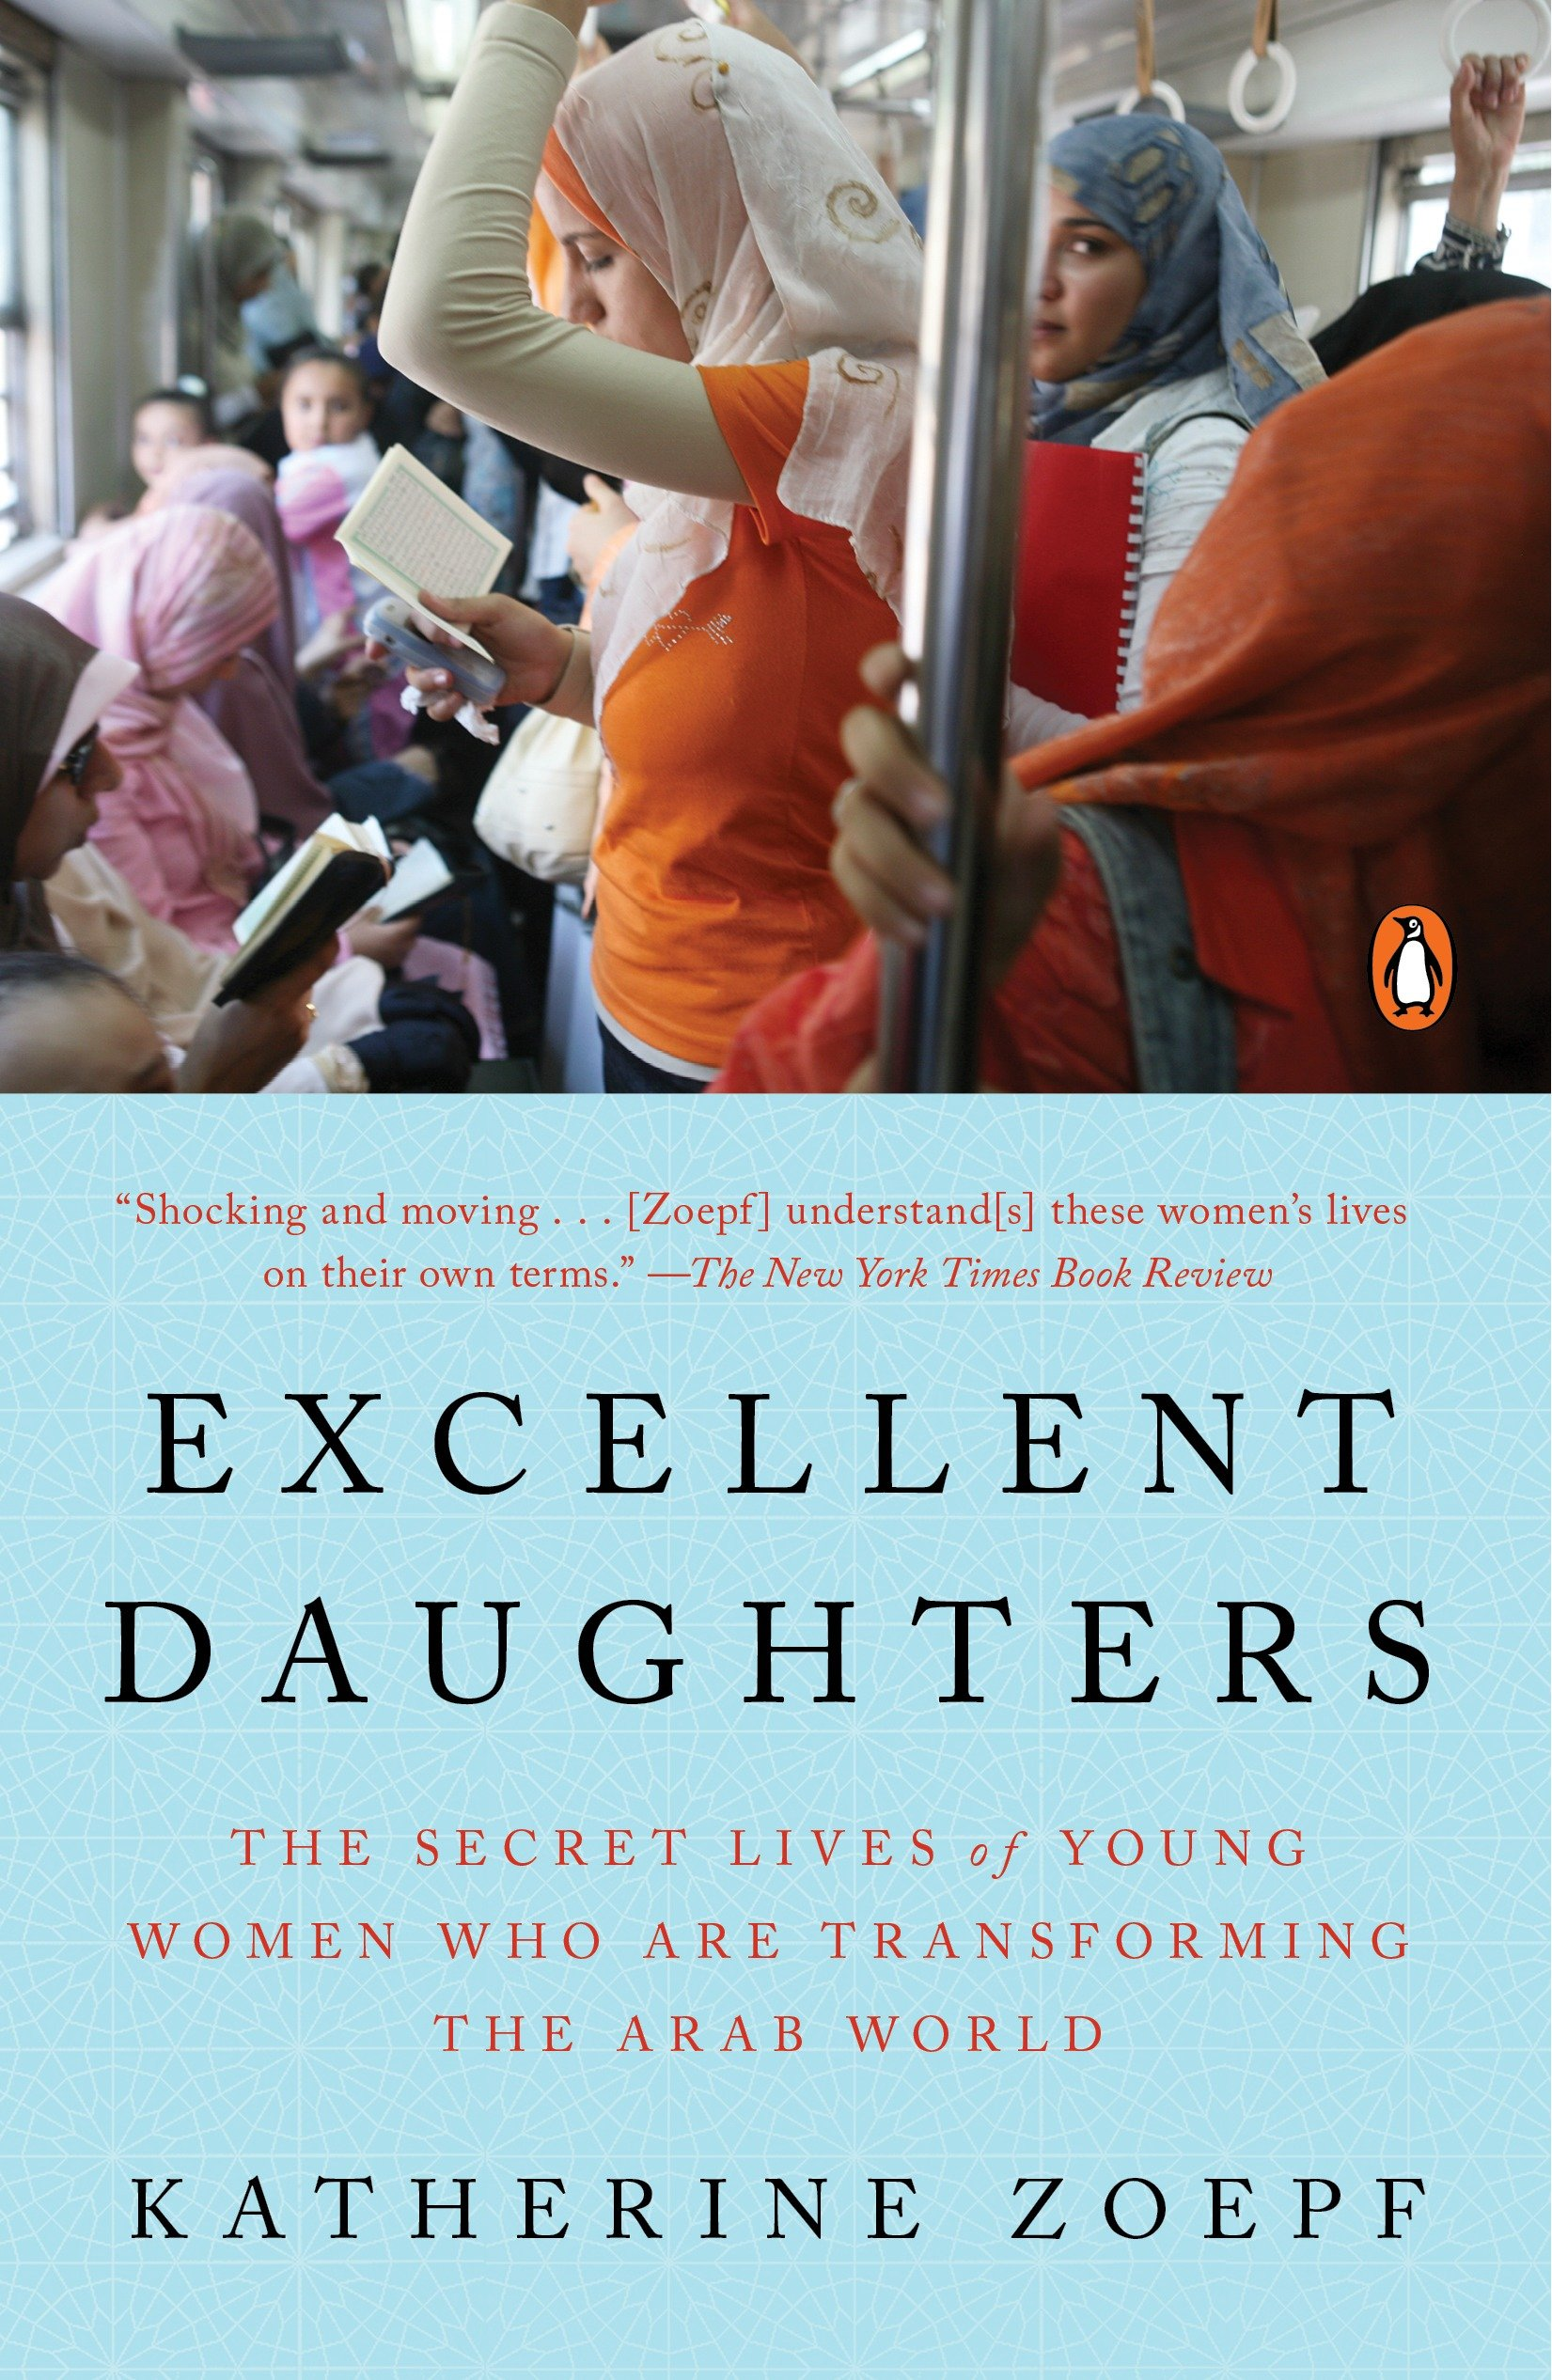 Excellent Daughters The Secret Lives of Young Women Who Are Transforming the Arab World